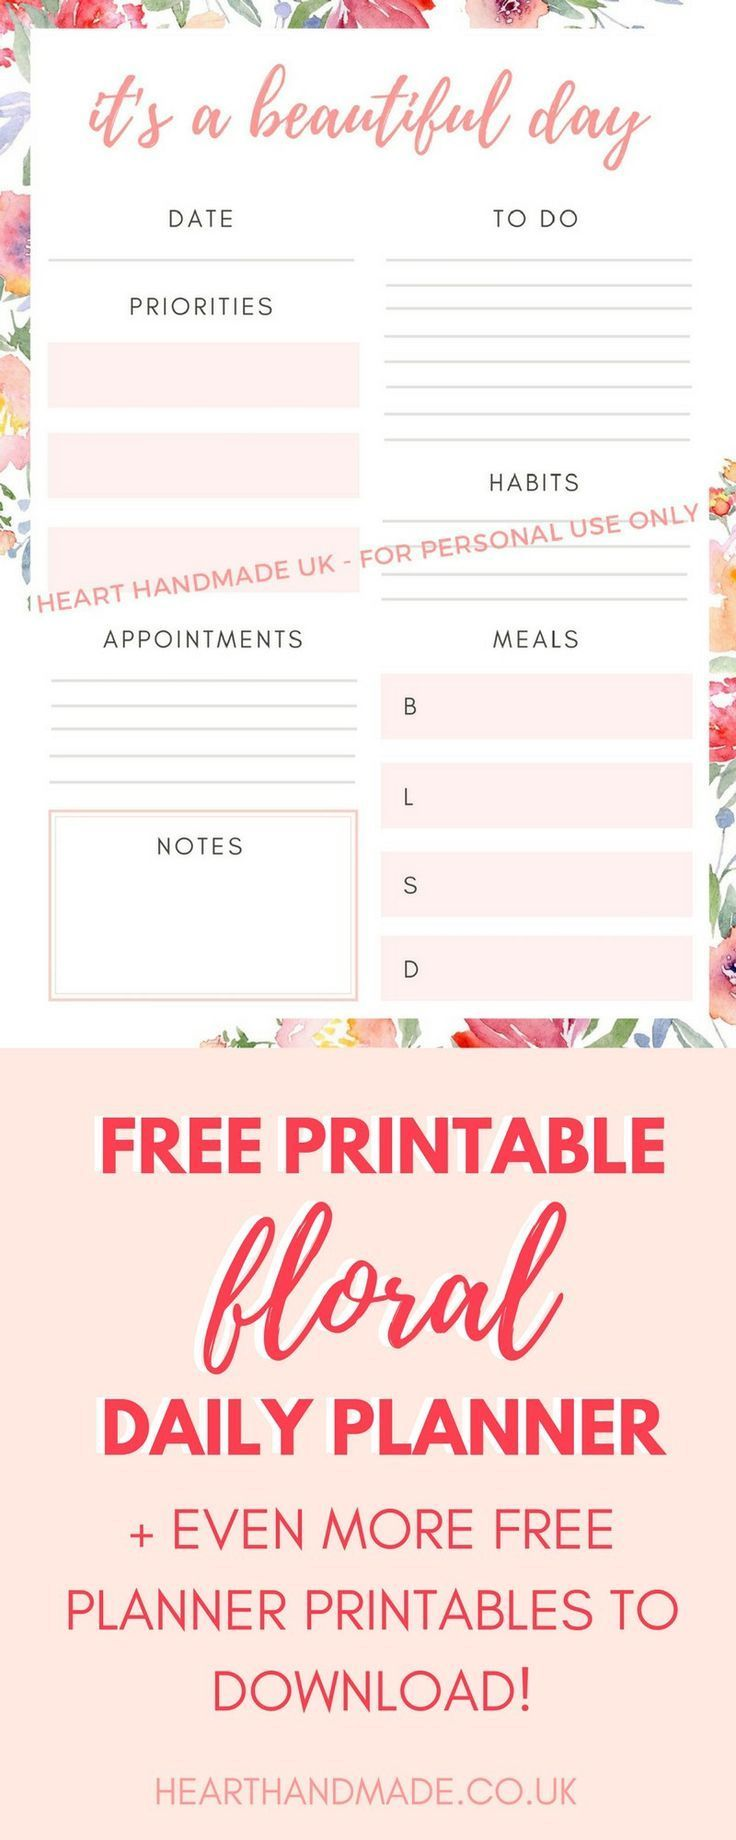 If you love free planner printables then you need to download this free printable daily planner that has beautiful watercolor flowers in the background. Stay organized and ultra productive with this free daily planner printable